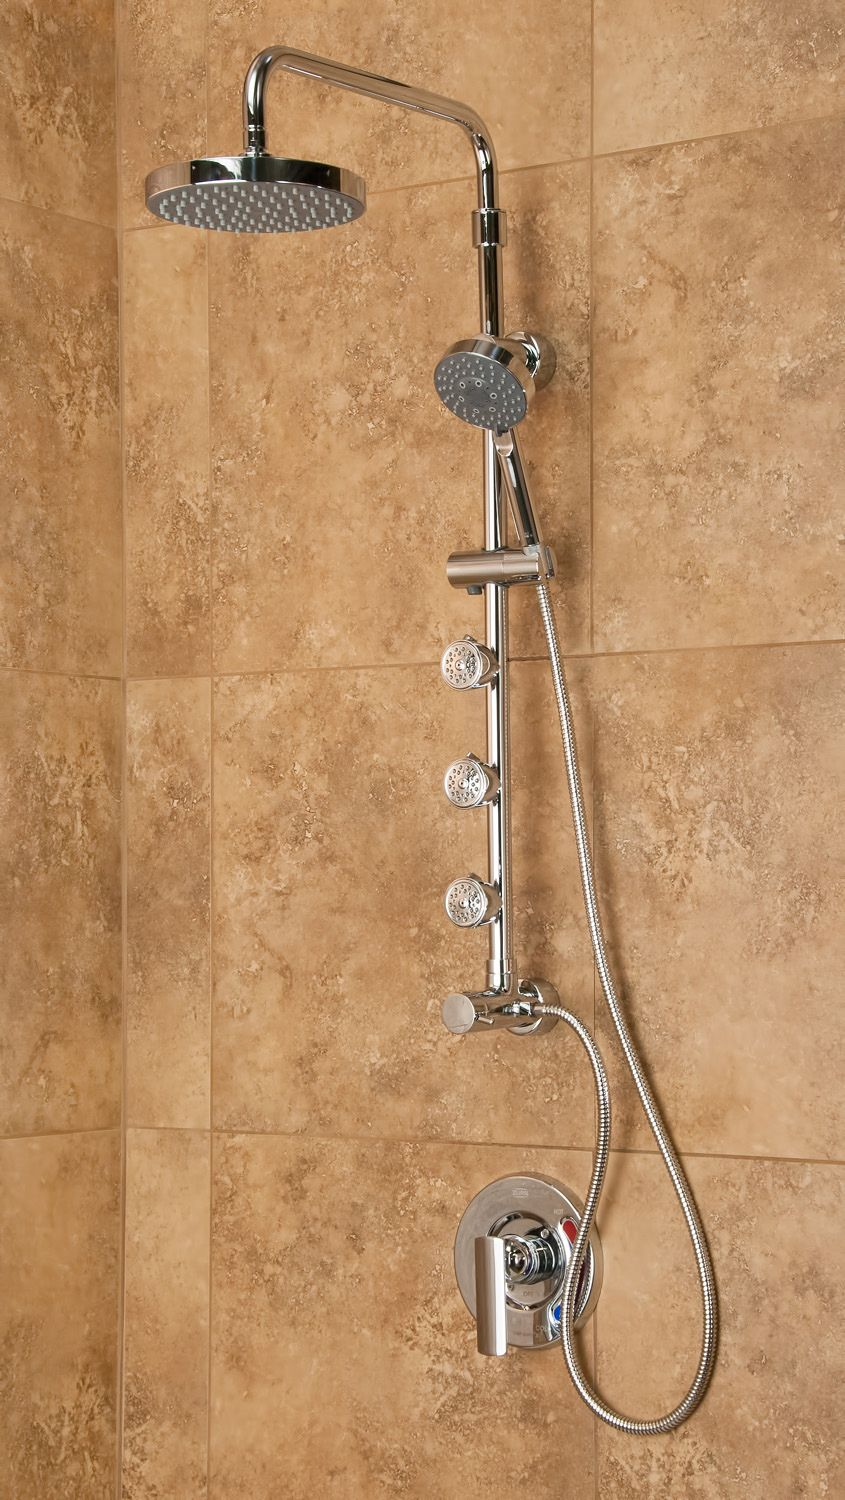 Transform Your Shower With This Lanikai 3 Function Shower System